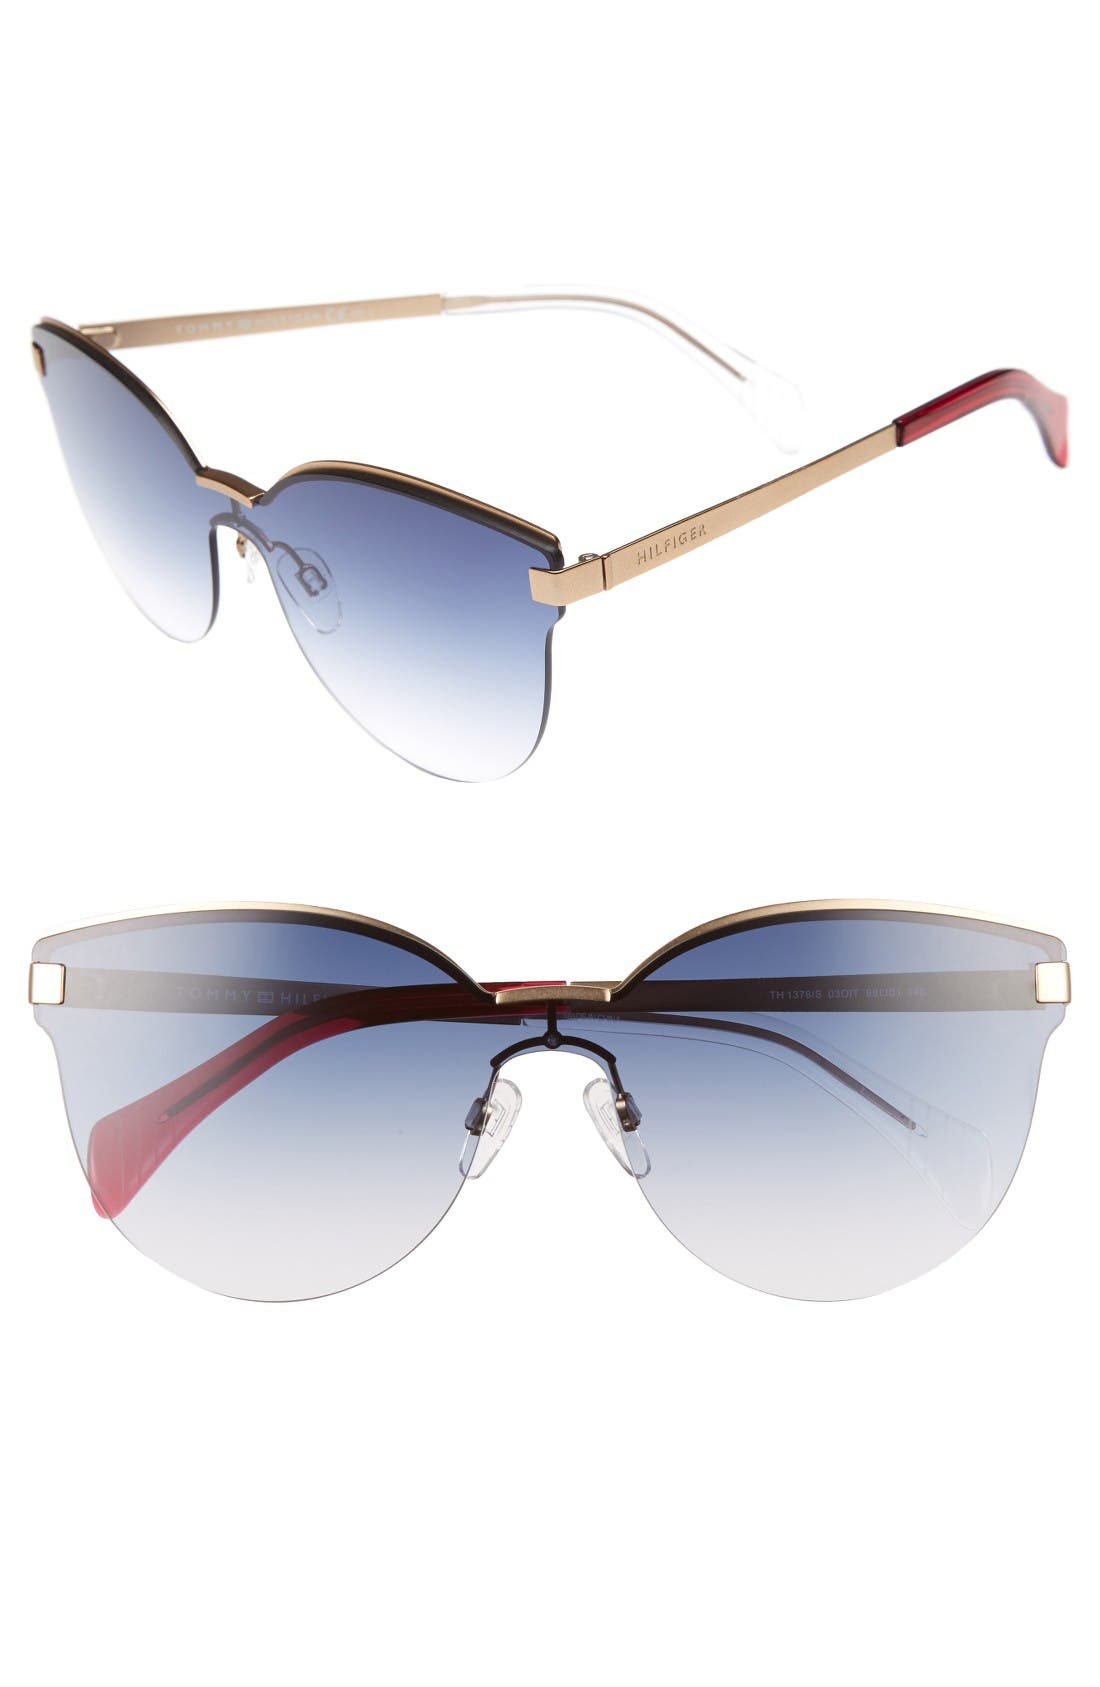 Tommy Hilfiger 99mm Rimless Cat Eye Sunglasses